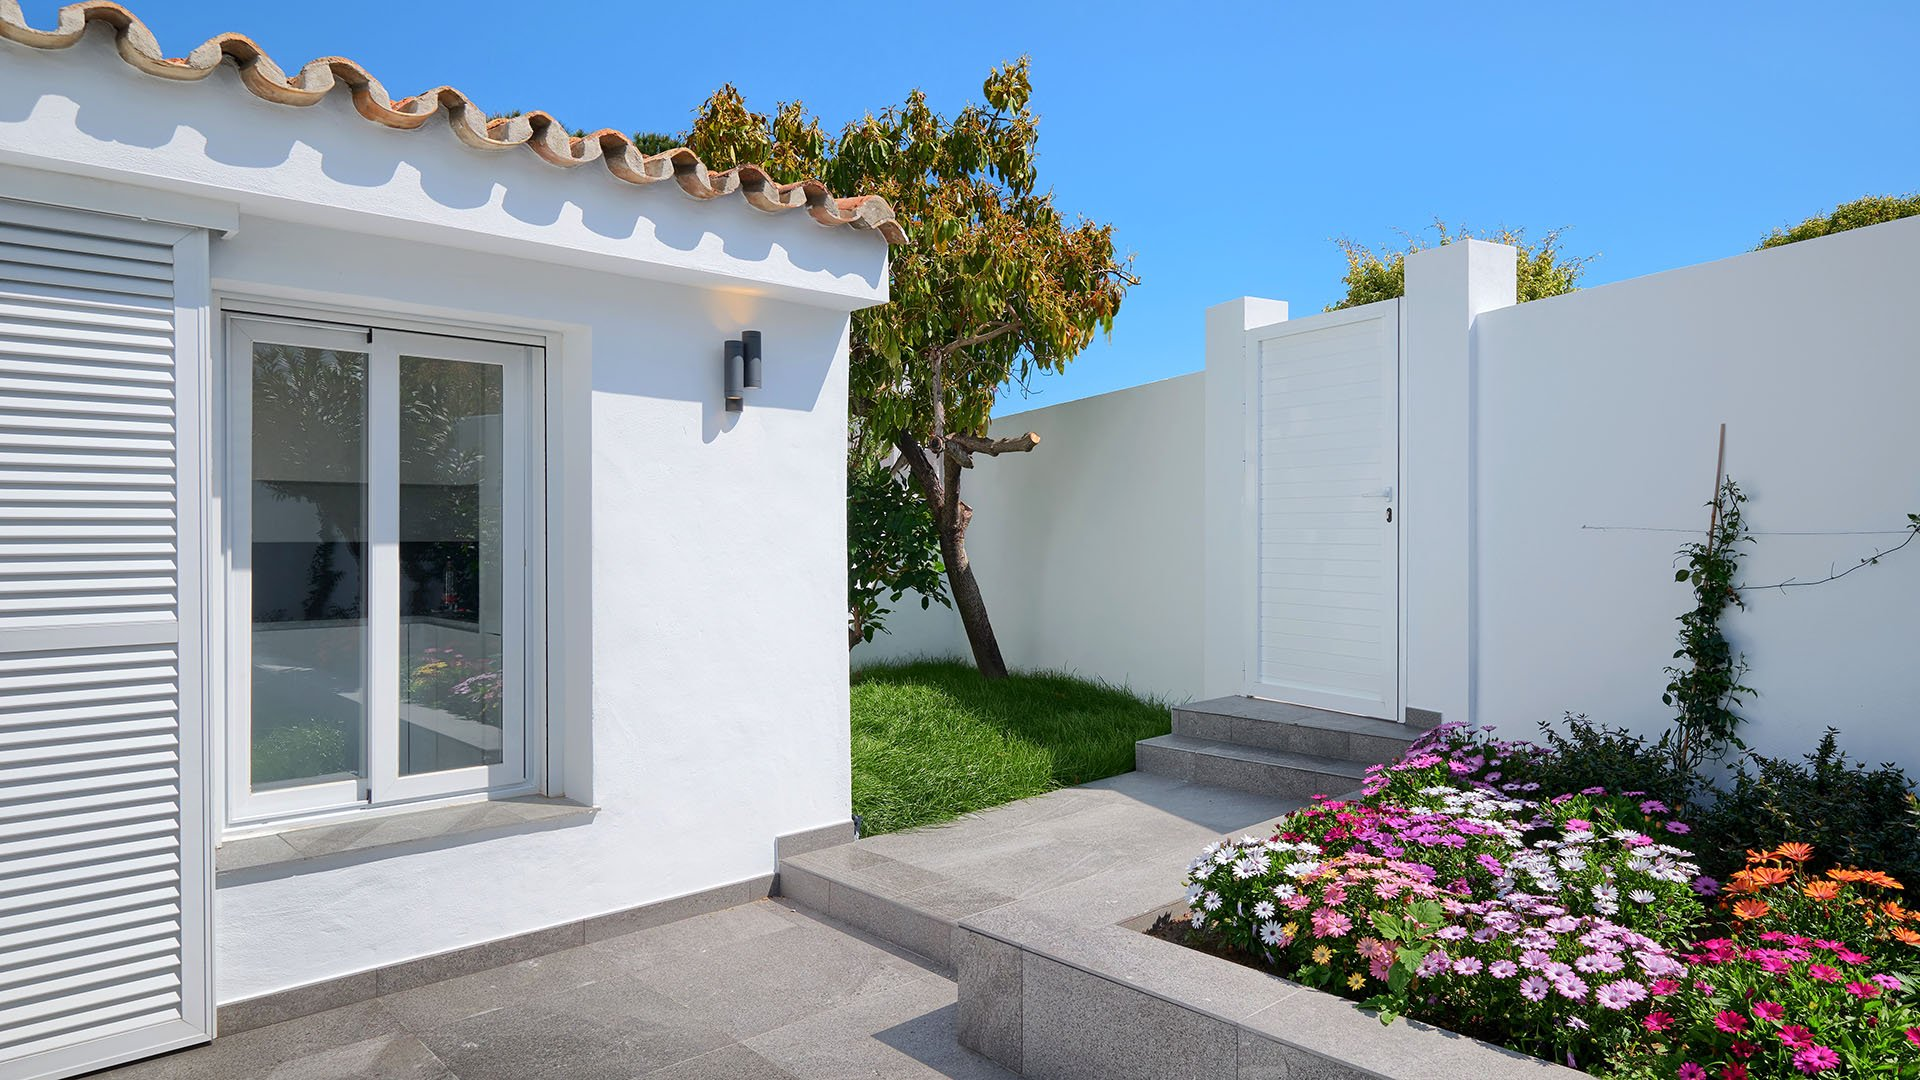 Puerto Romano: Fully renovated quality townhouses in Estepona